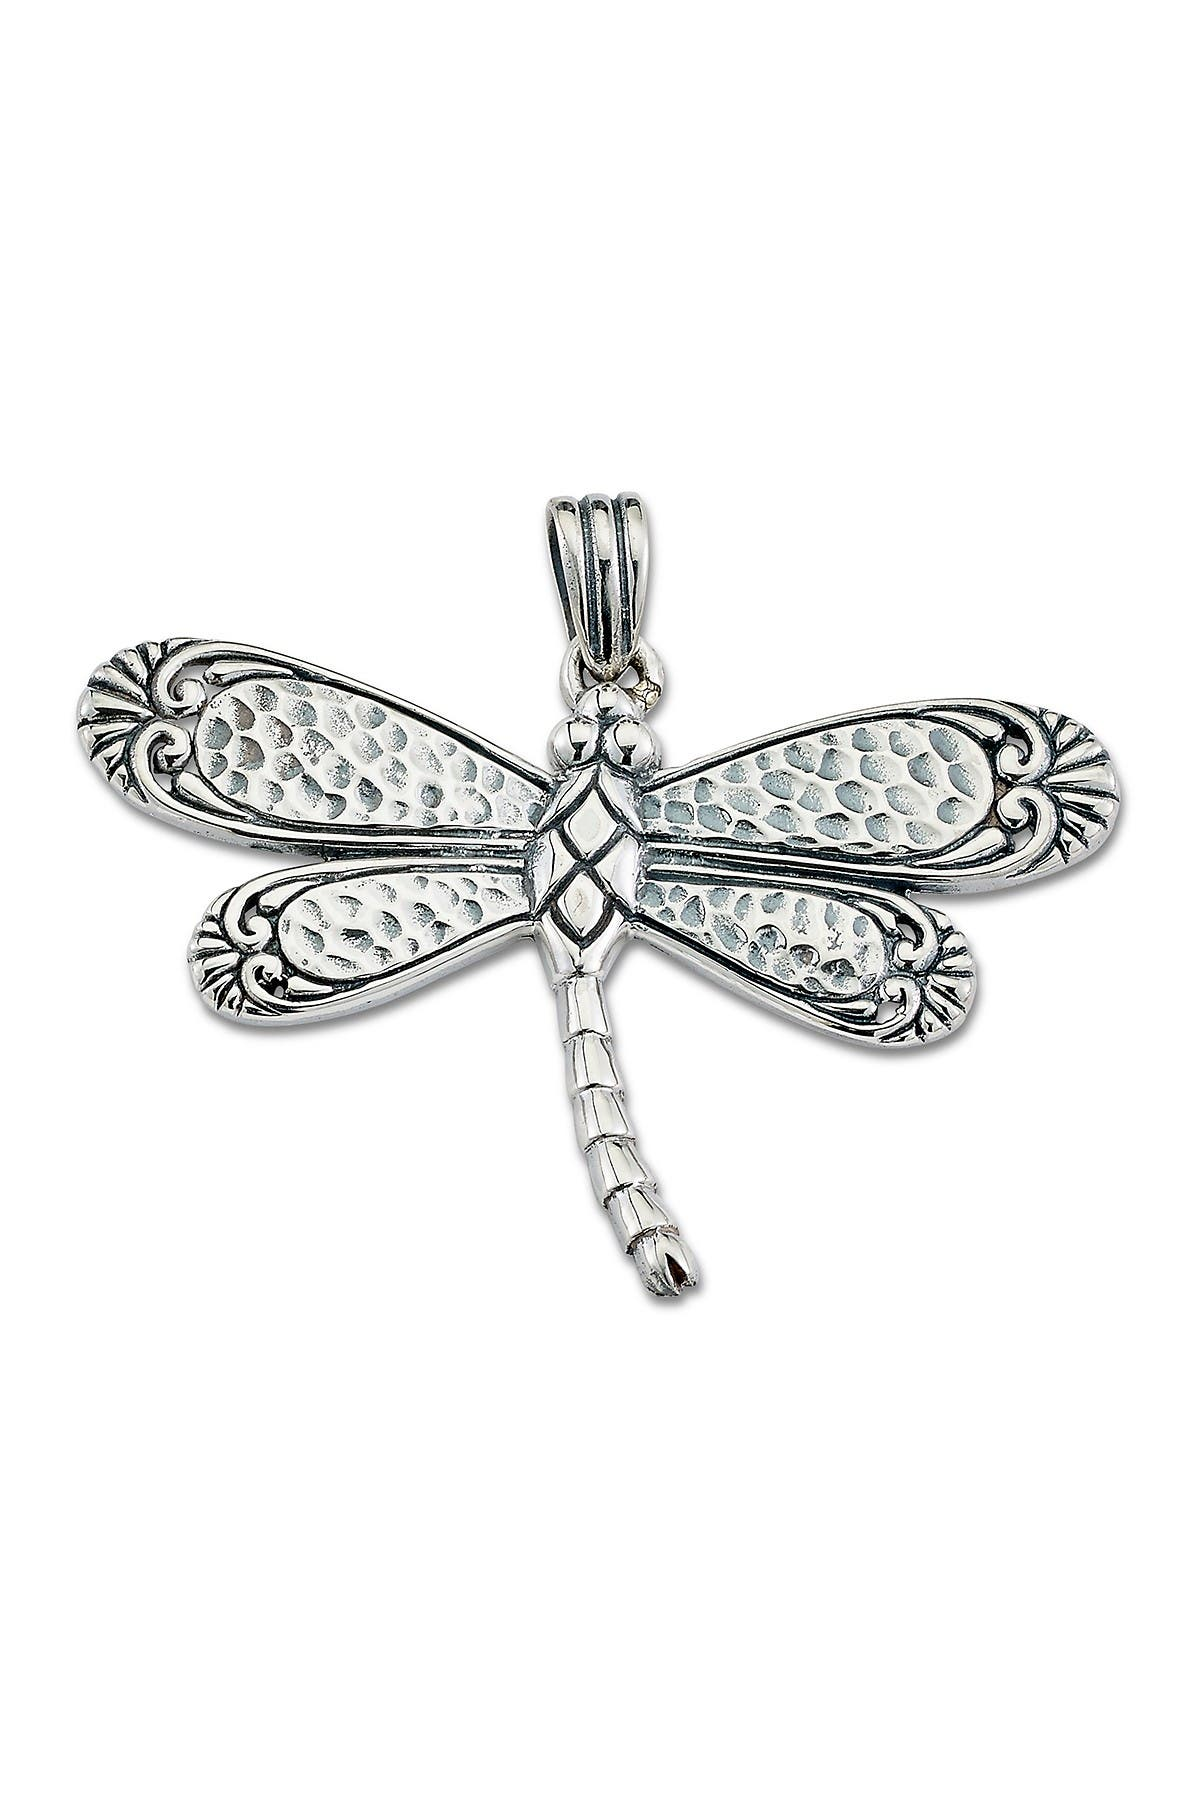 Image of Samuel B Jewelry Sterling Silver Dragonfly Pendant